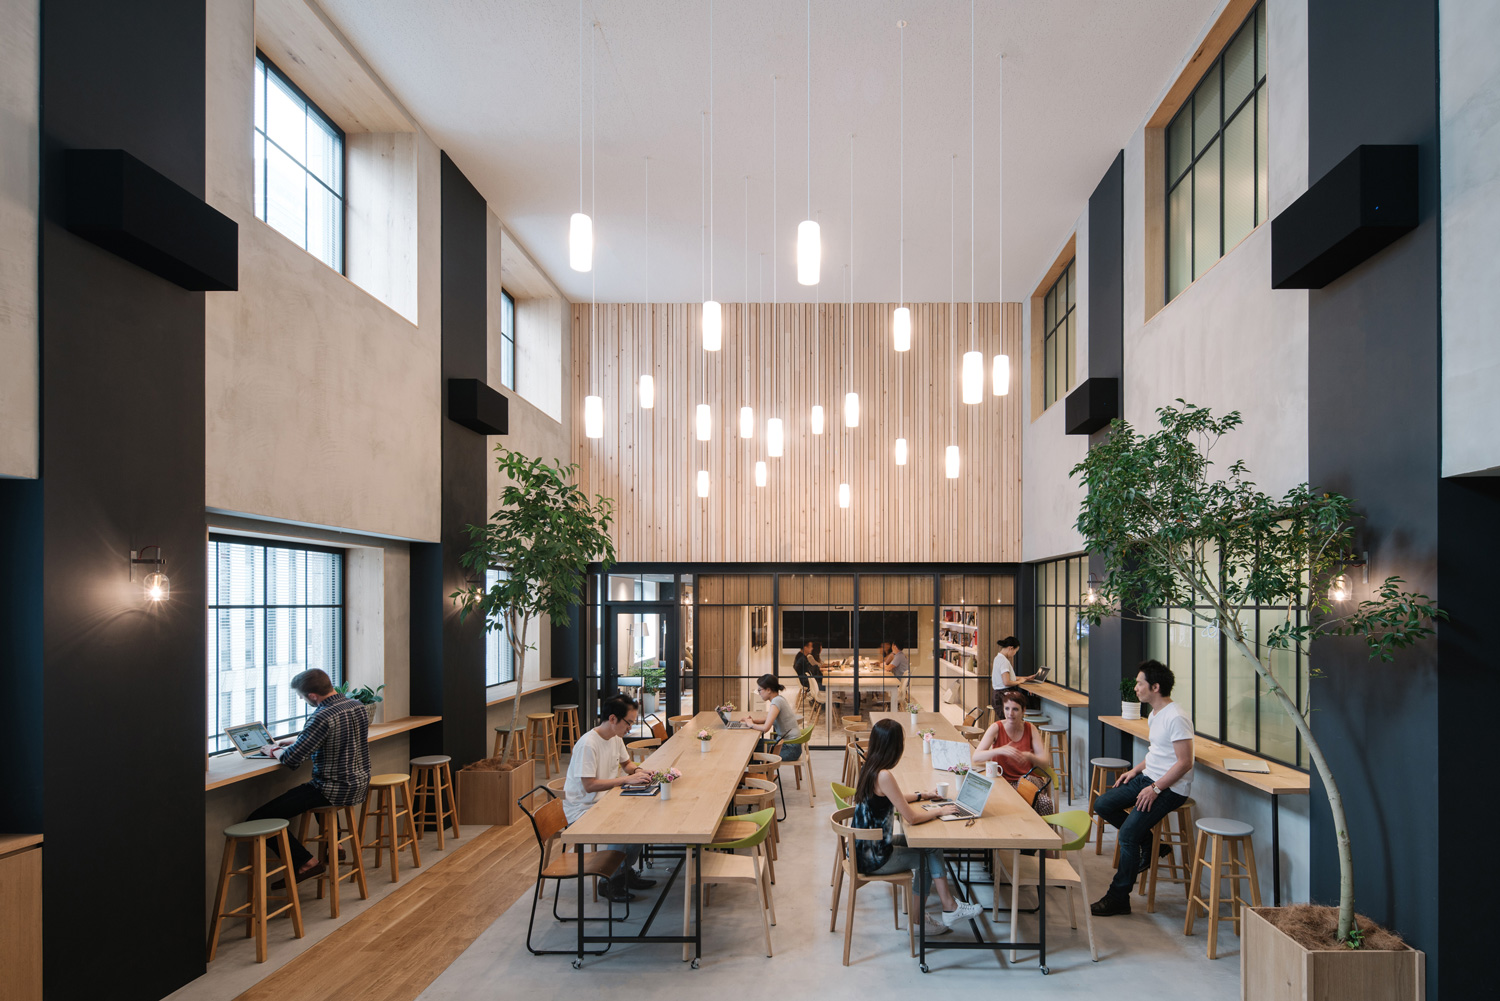 Office Desing Simple Ic Corporate Interiors Airbnb Hq In Tokyo By Suppose Design Office Yellowtrace